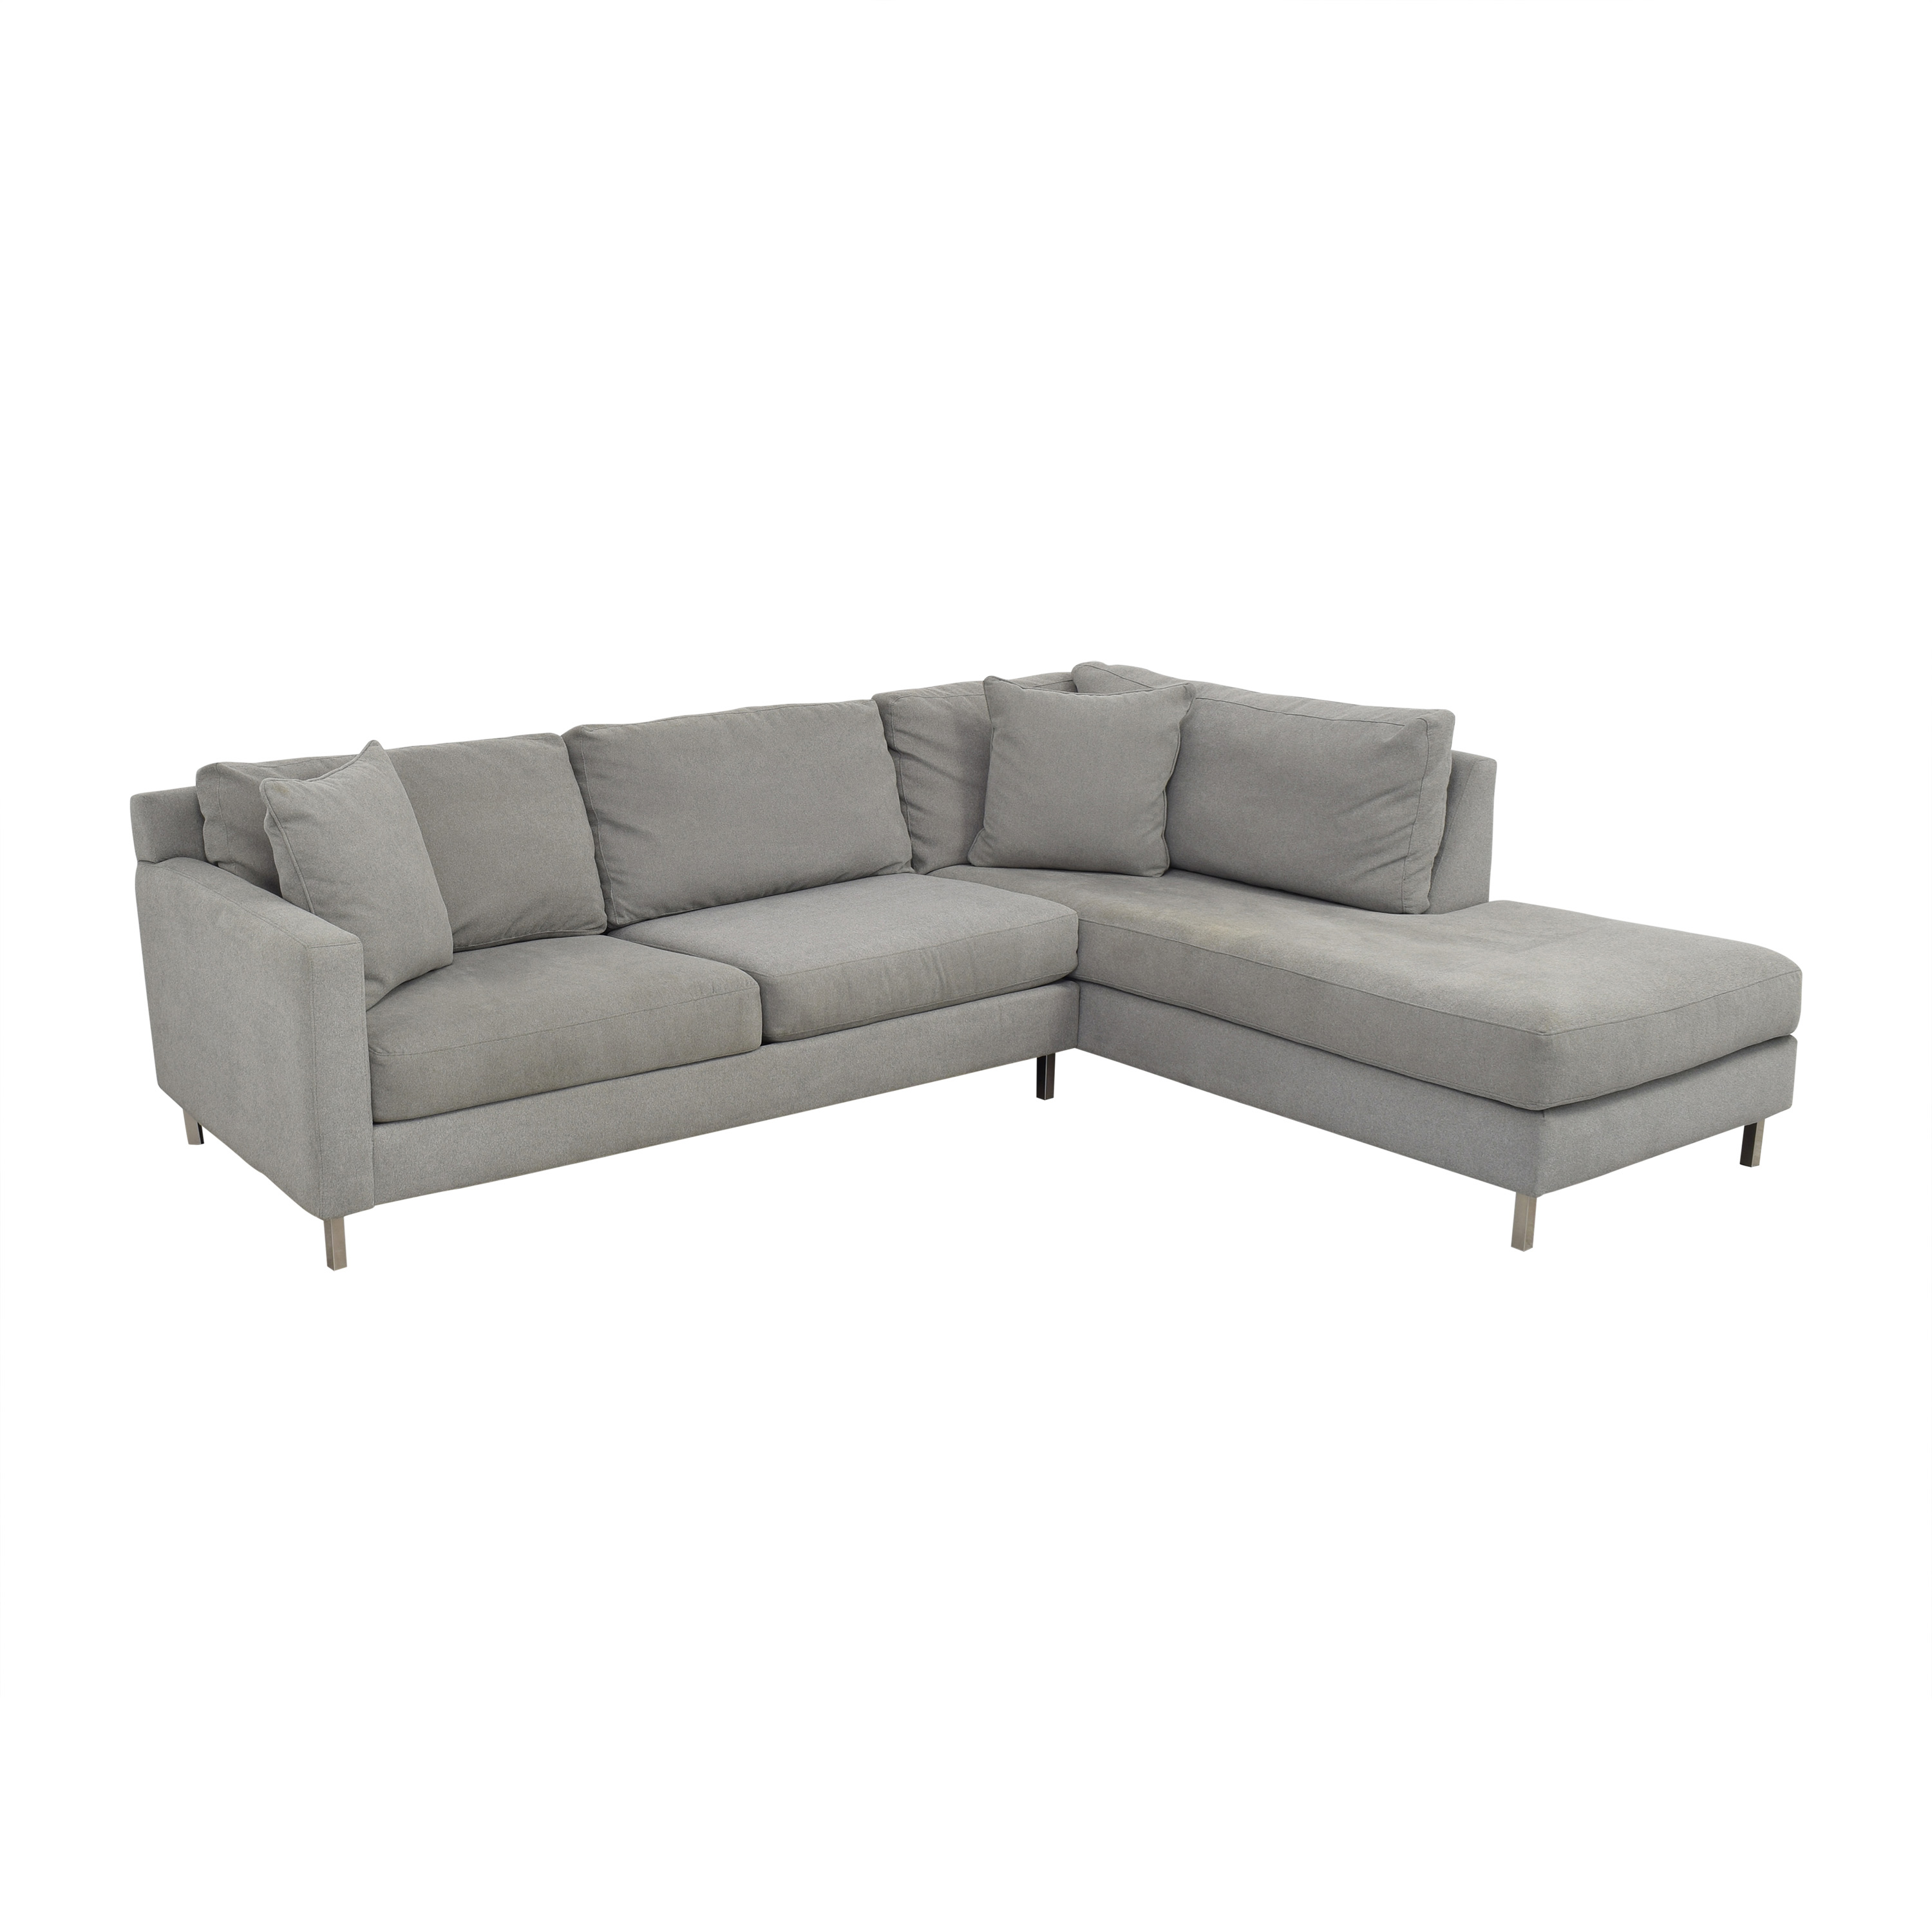 Raymour & Flanigan Raymour & Flanigan Modern Grey Sectional Couch second hand